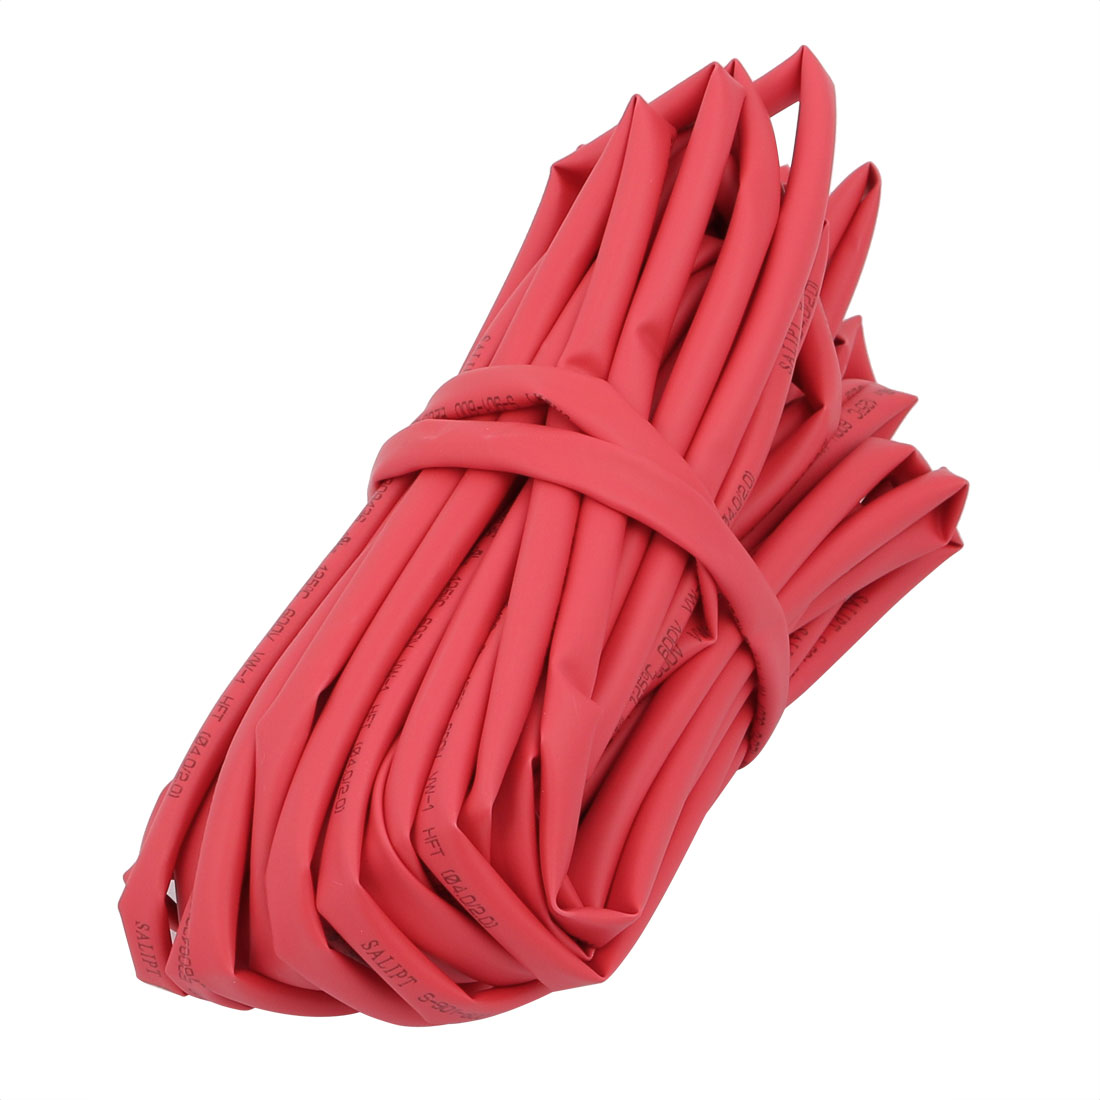 10M Long 4mm Inner Dia. Polyolefin Heat Shrinkable Tube Red for Wire Repairing